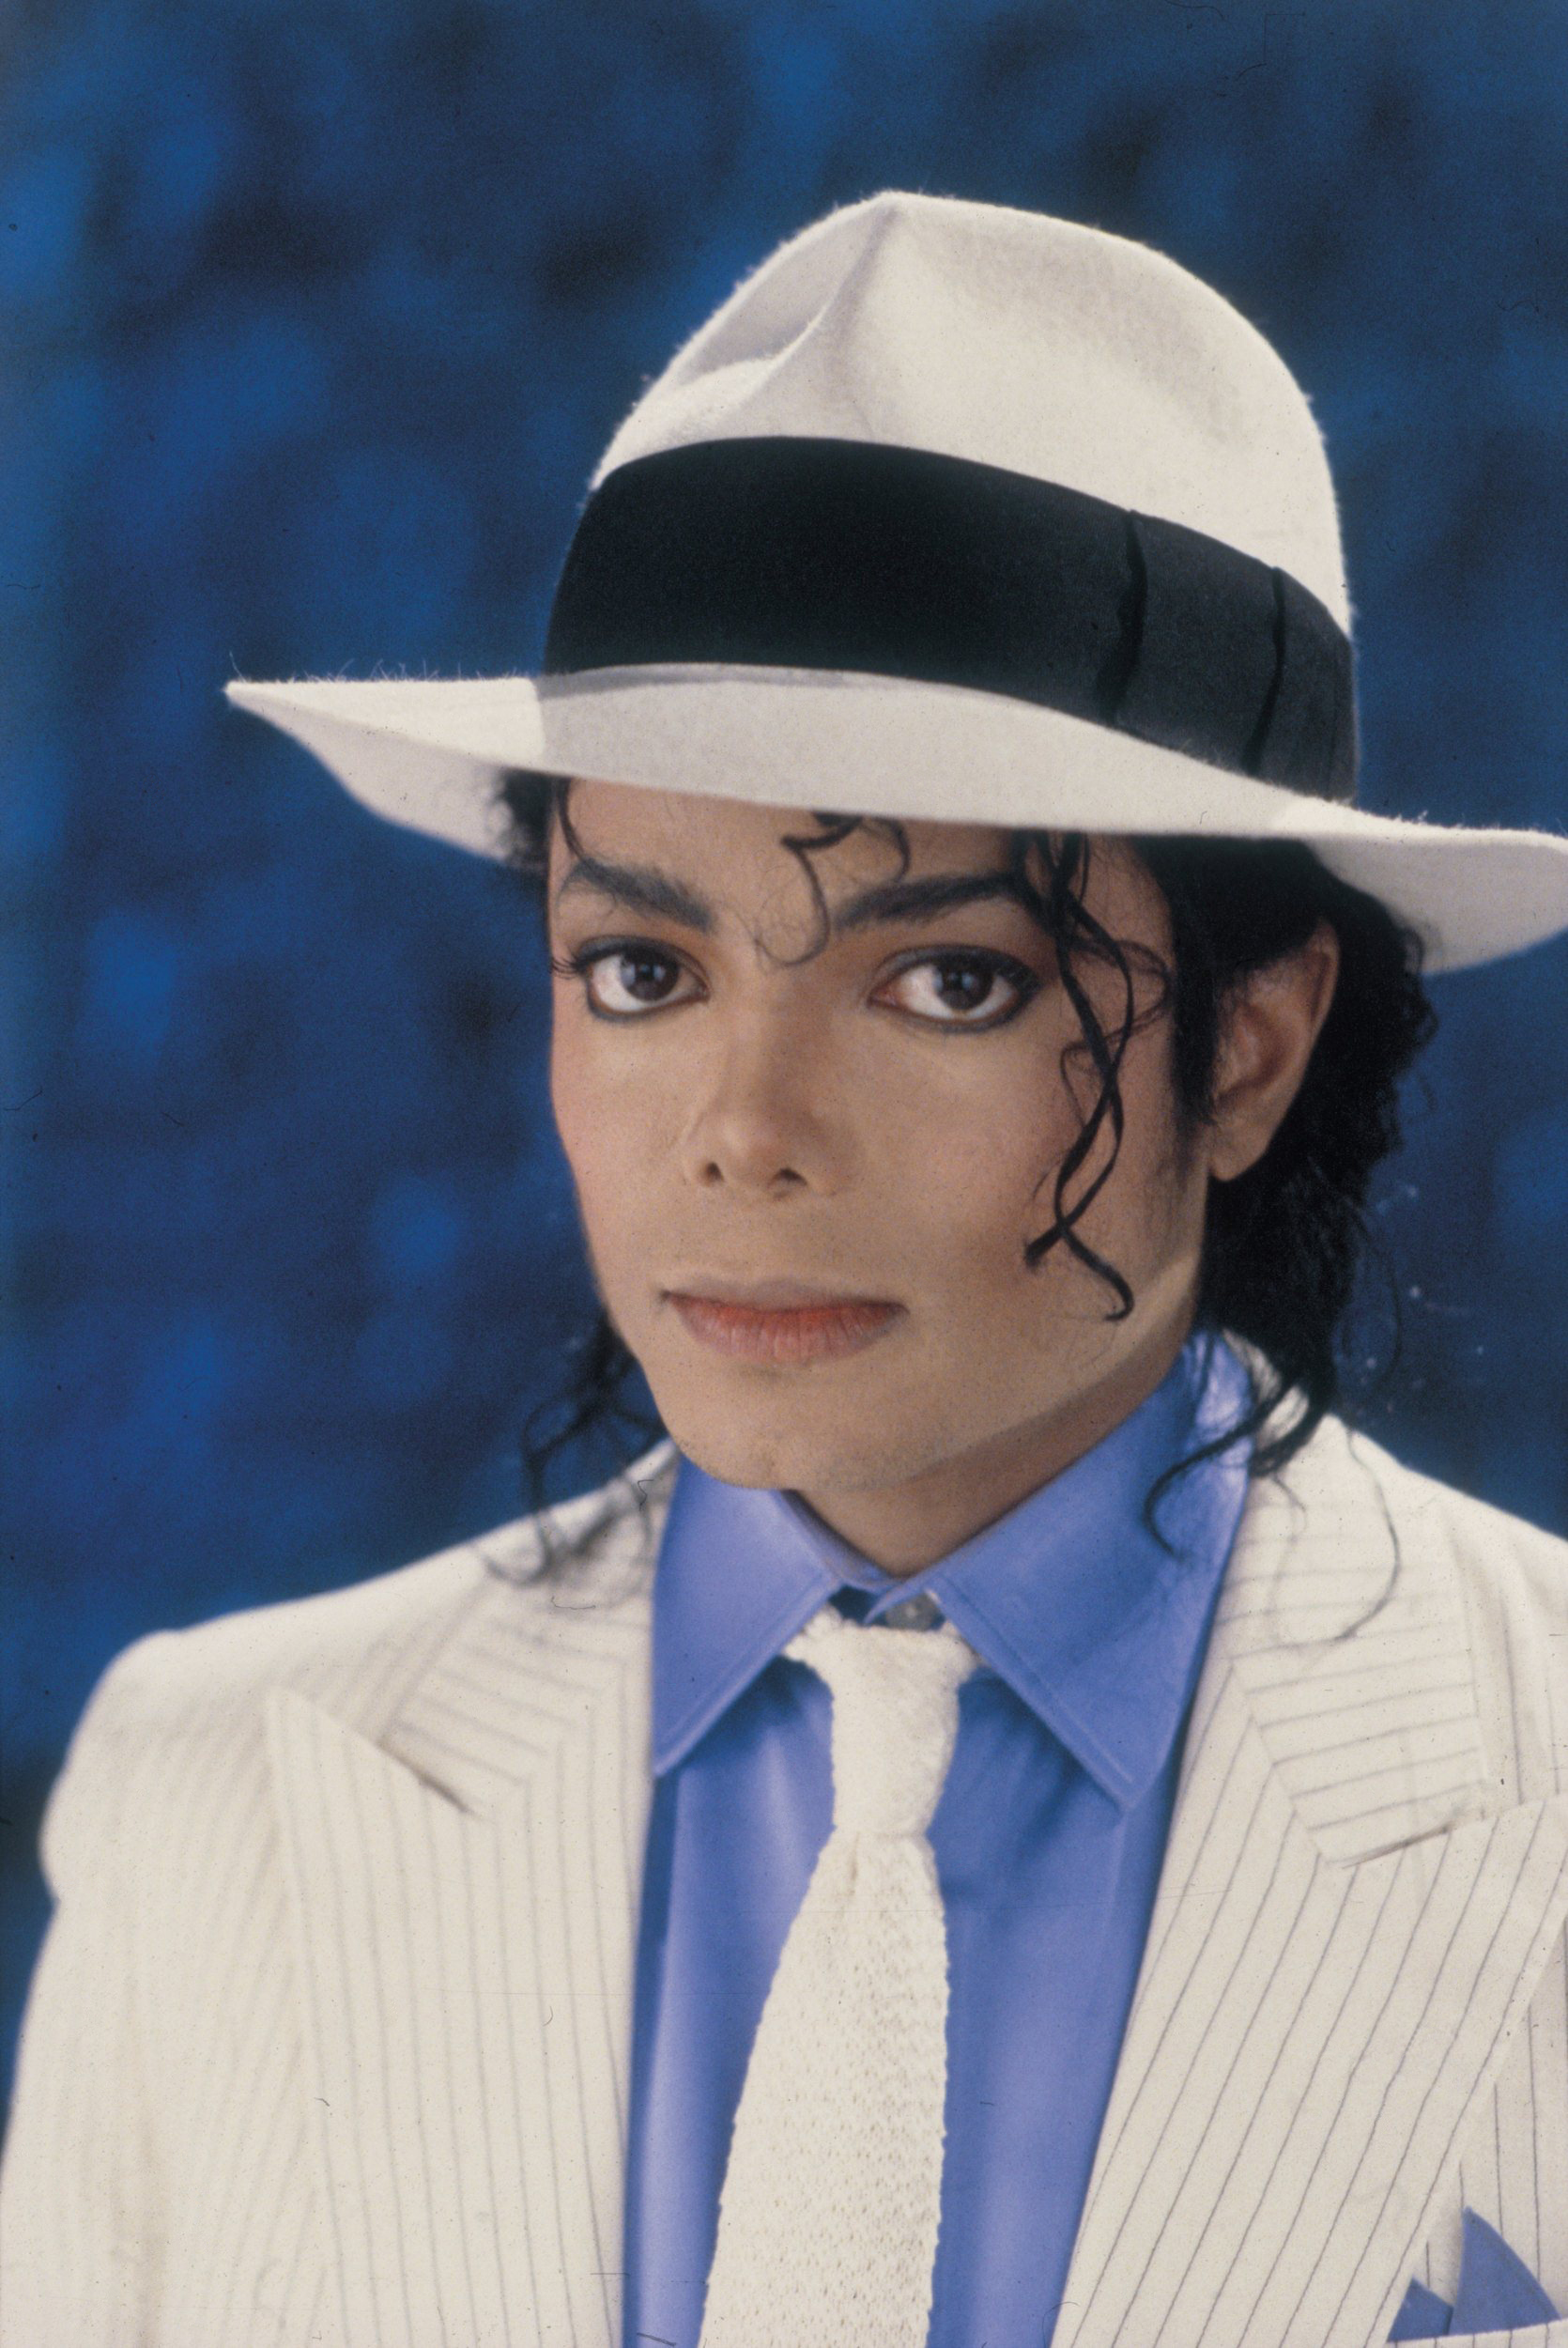 42521de85 Michael Jackson (HQ = High Quality) - Michael Jackson Photo ...